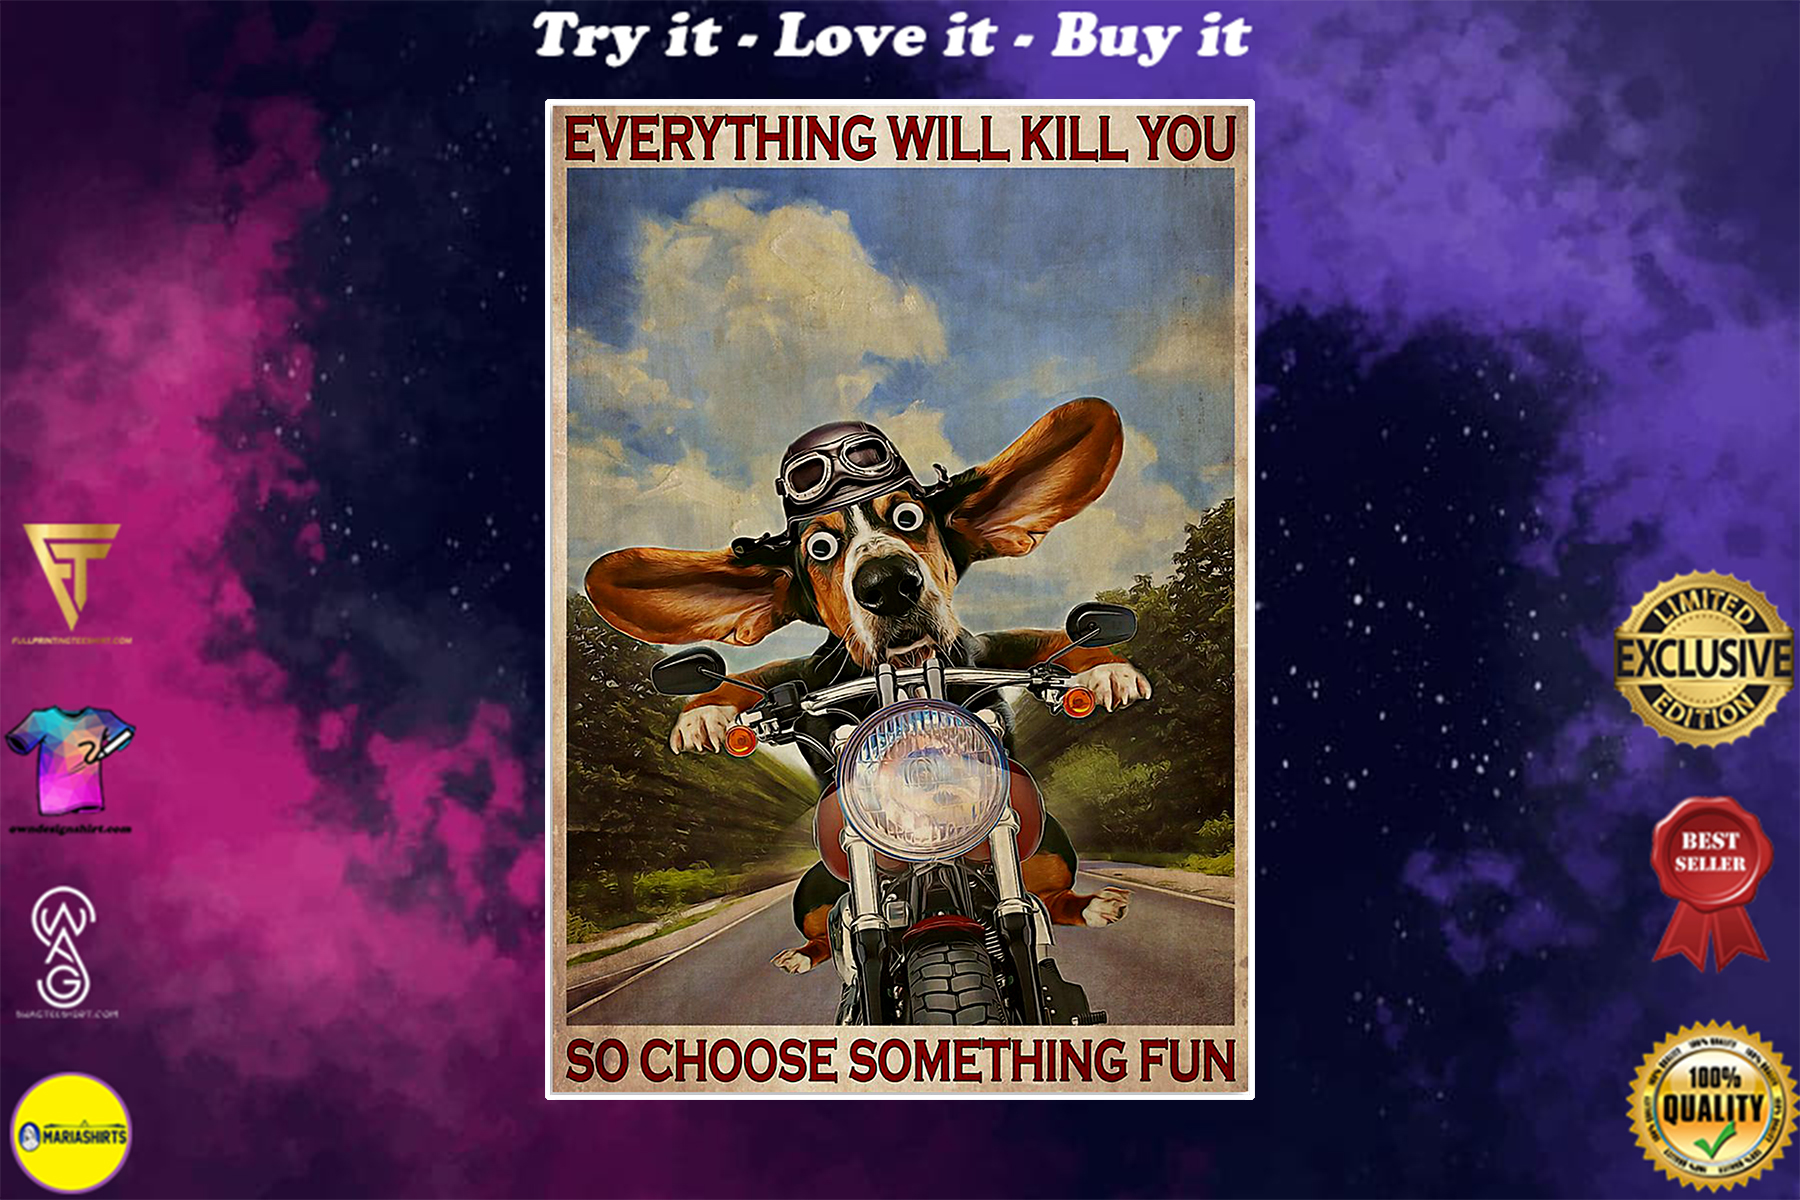 everything will kill you so choose something fun basset hound motorcycle vintage poster